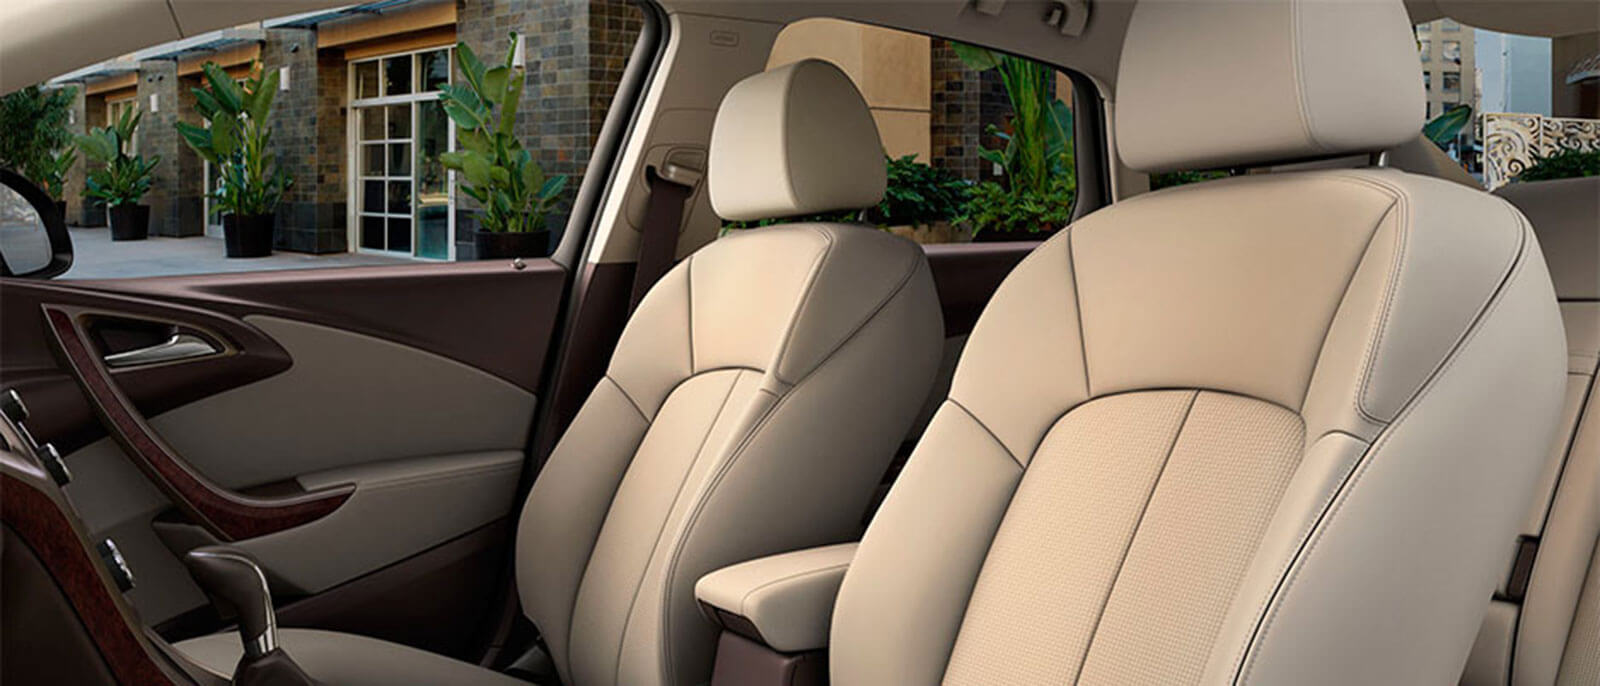 Check Out The New Buick Verano